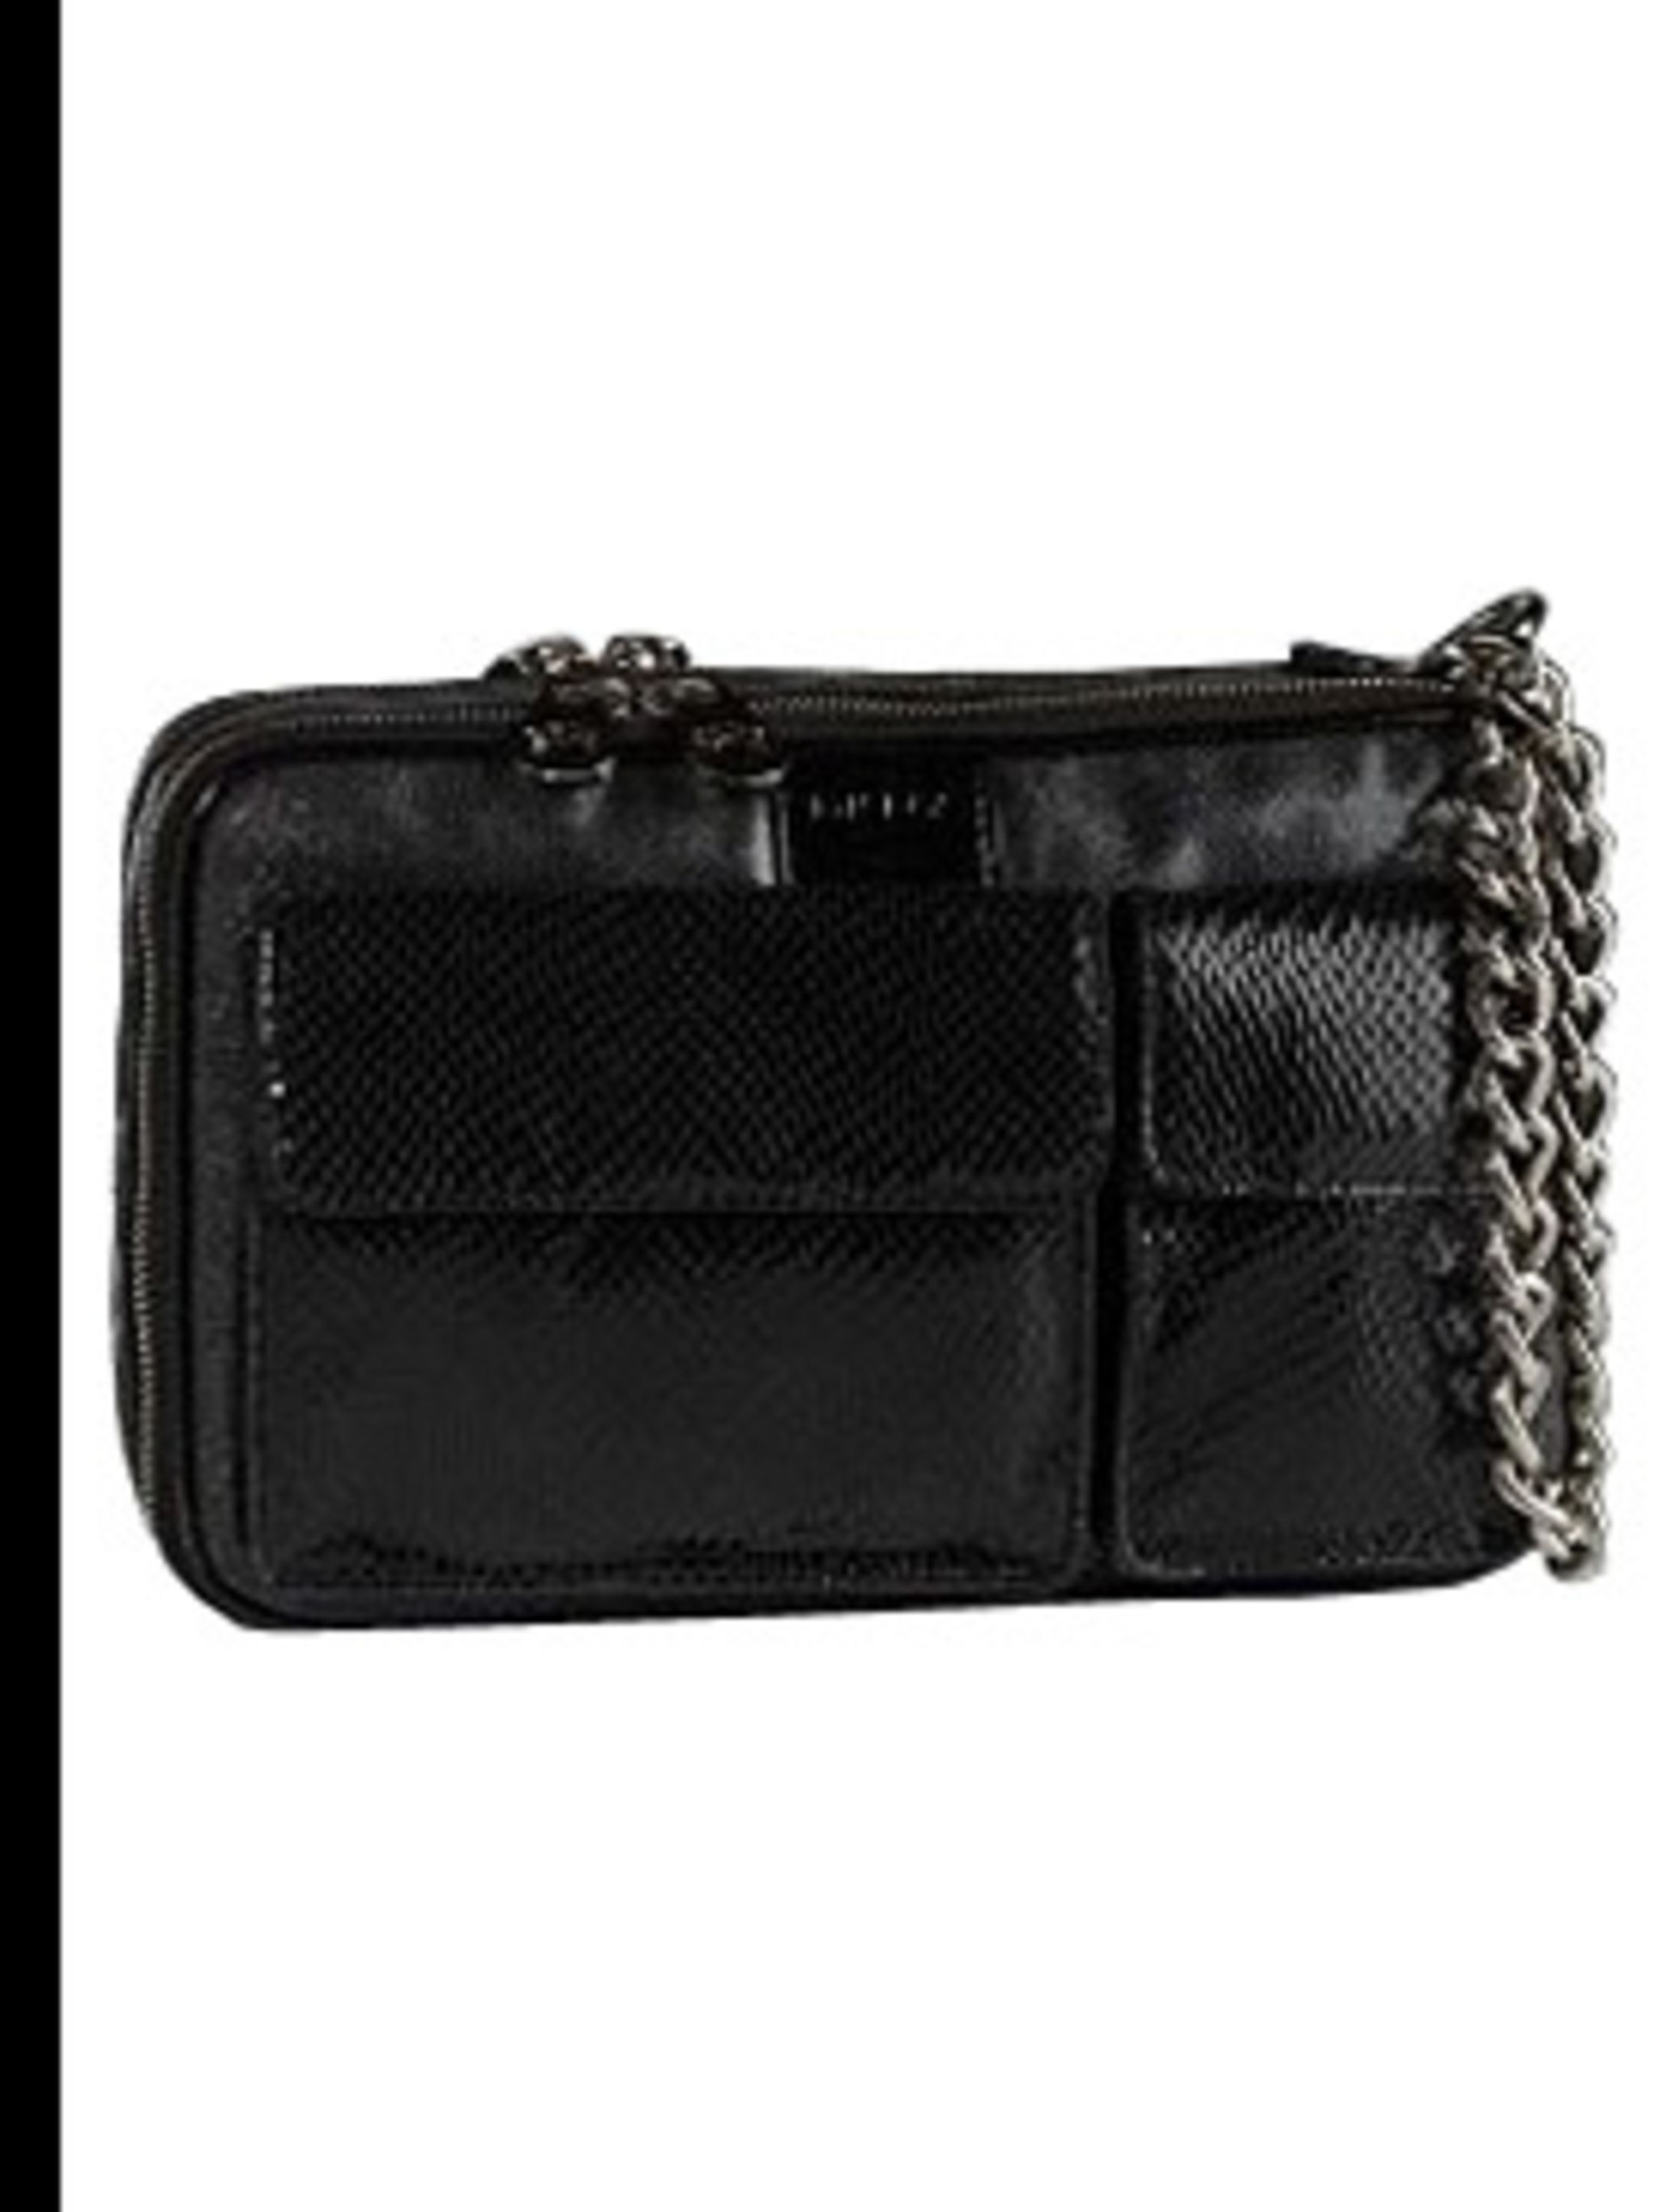 <p>Runway wrist bag £ by DKNY, for stockists call 020 7499 6238</p>